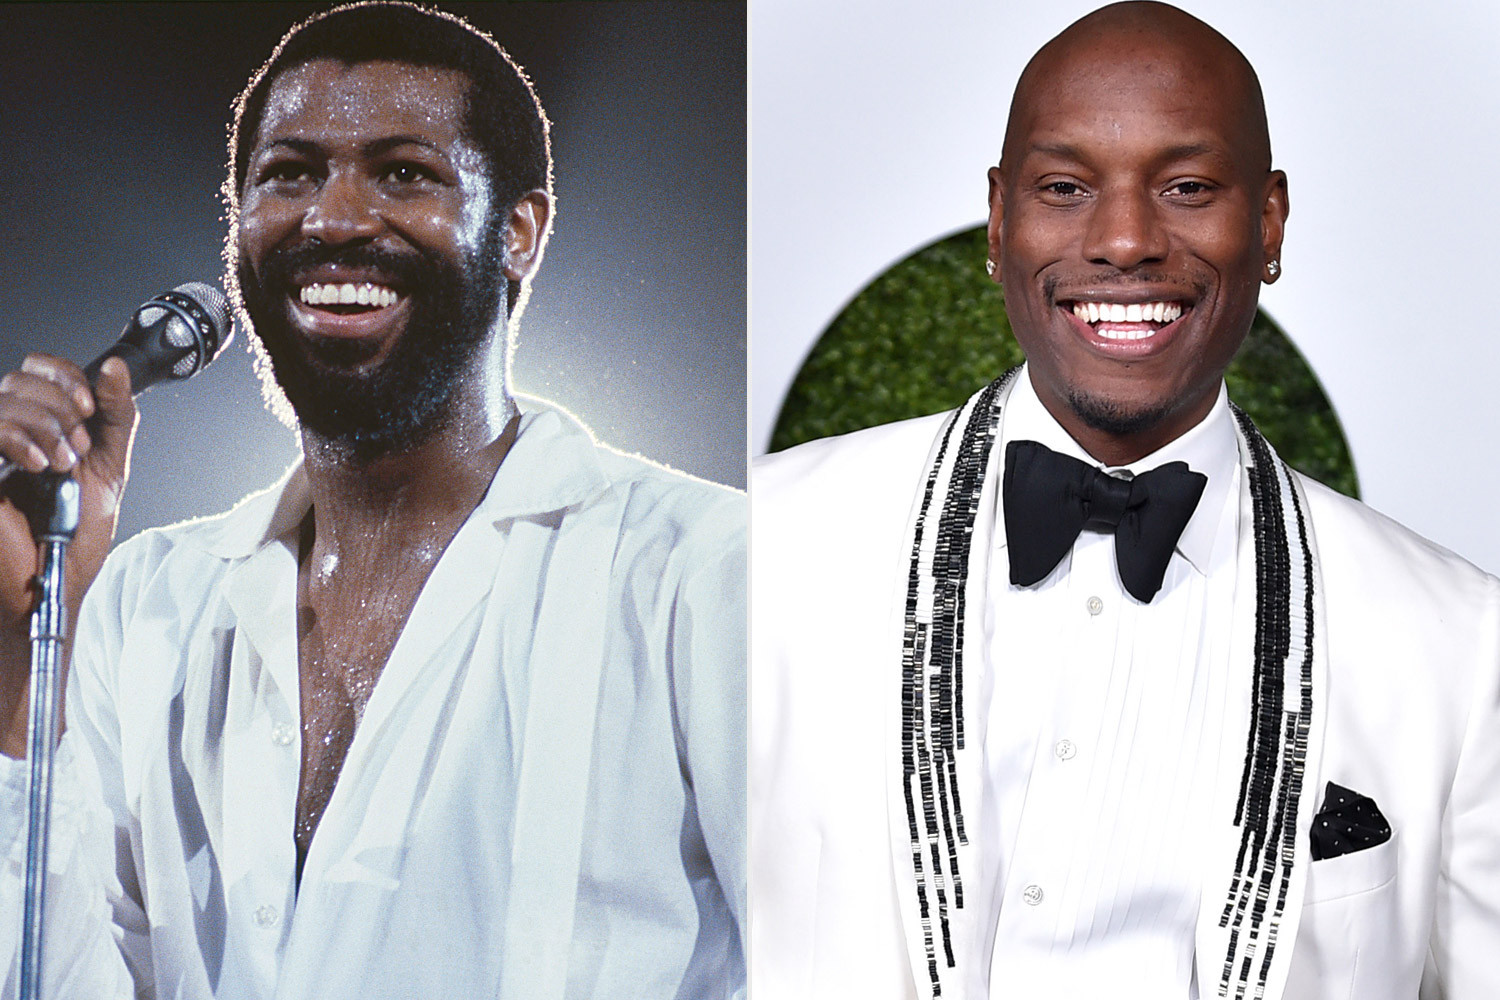 Teddy-Pendergrass-and-Tyrese-Gibson